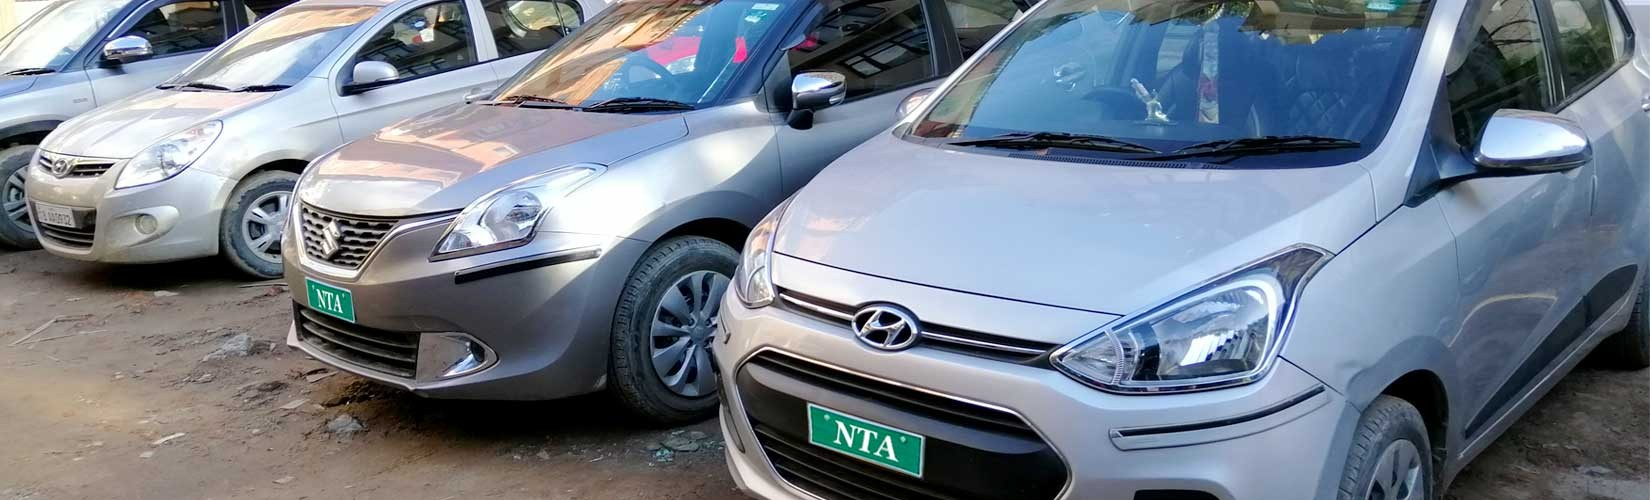 Rental Car in Nepal